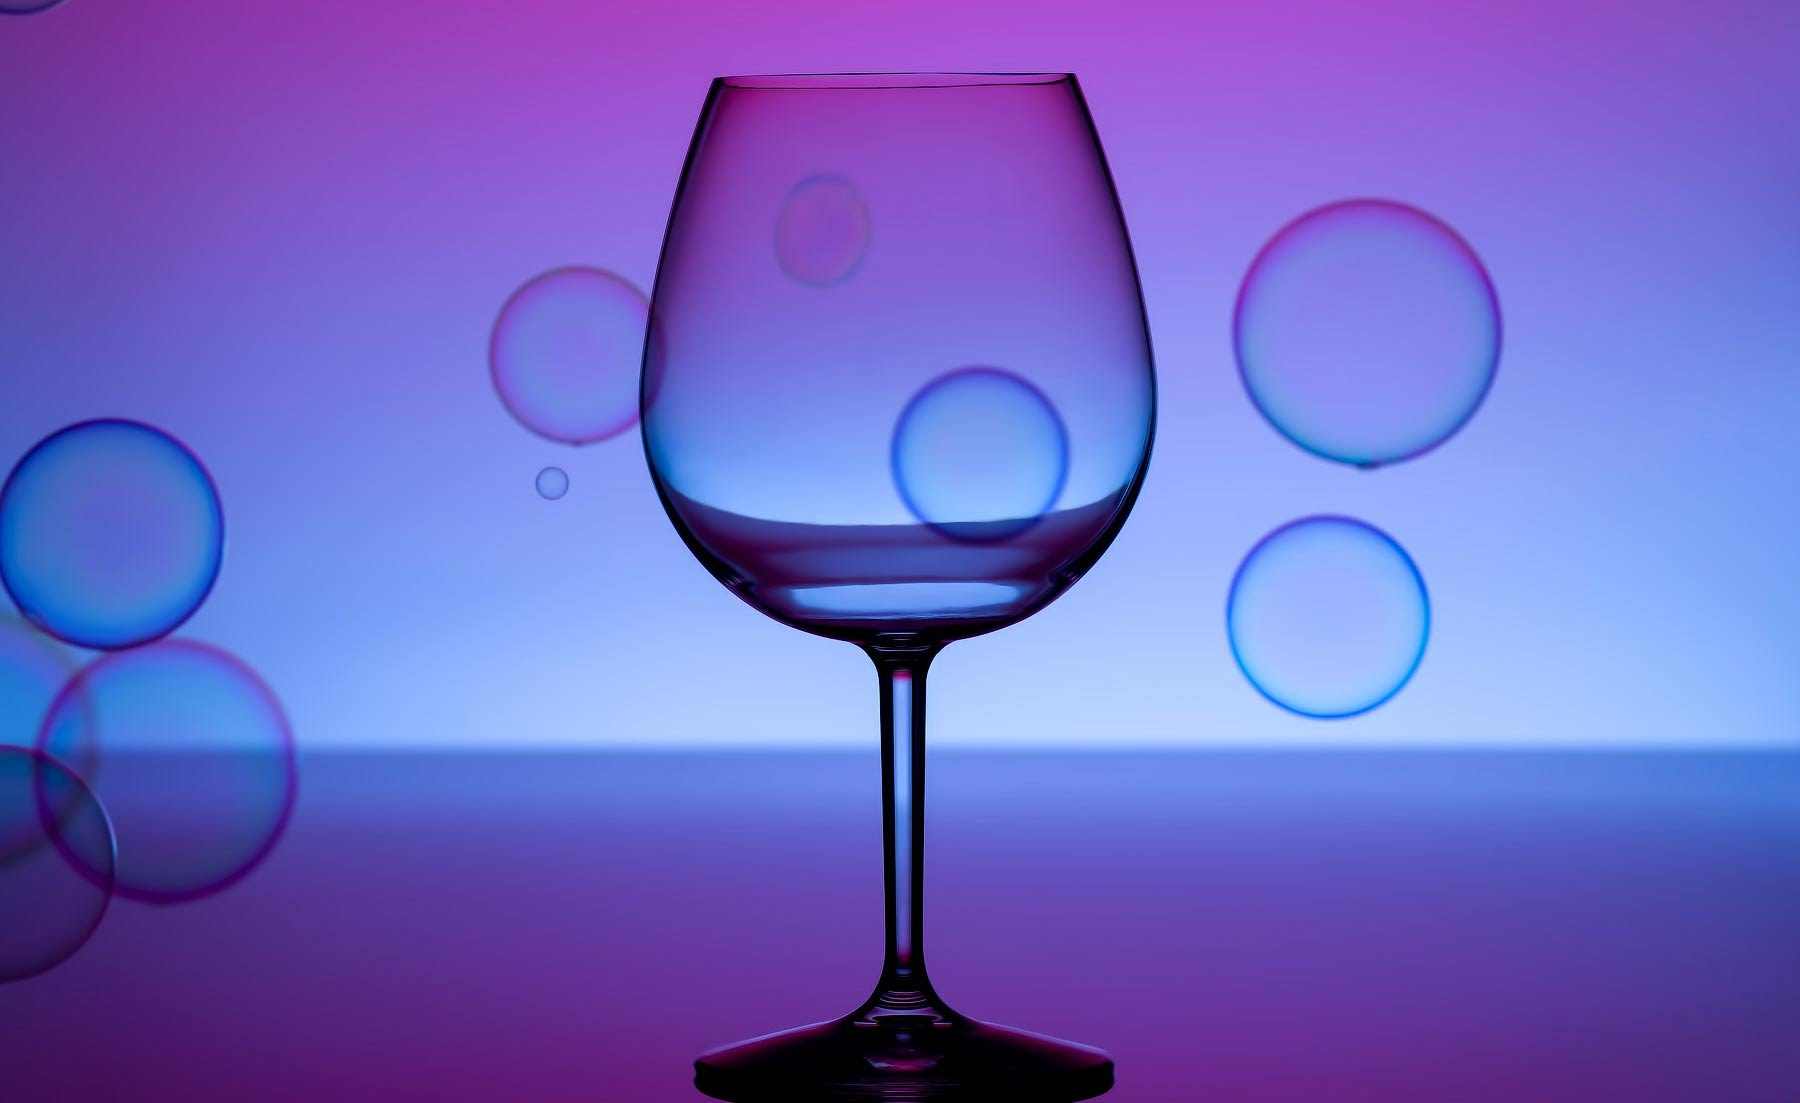 Colored Gels & Bubbles: A Fun Photo Idea to Try This Week